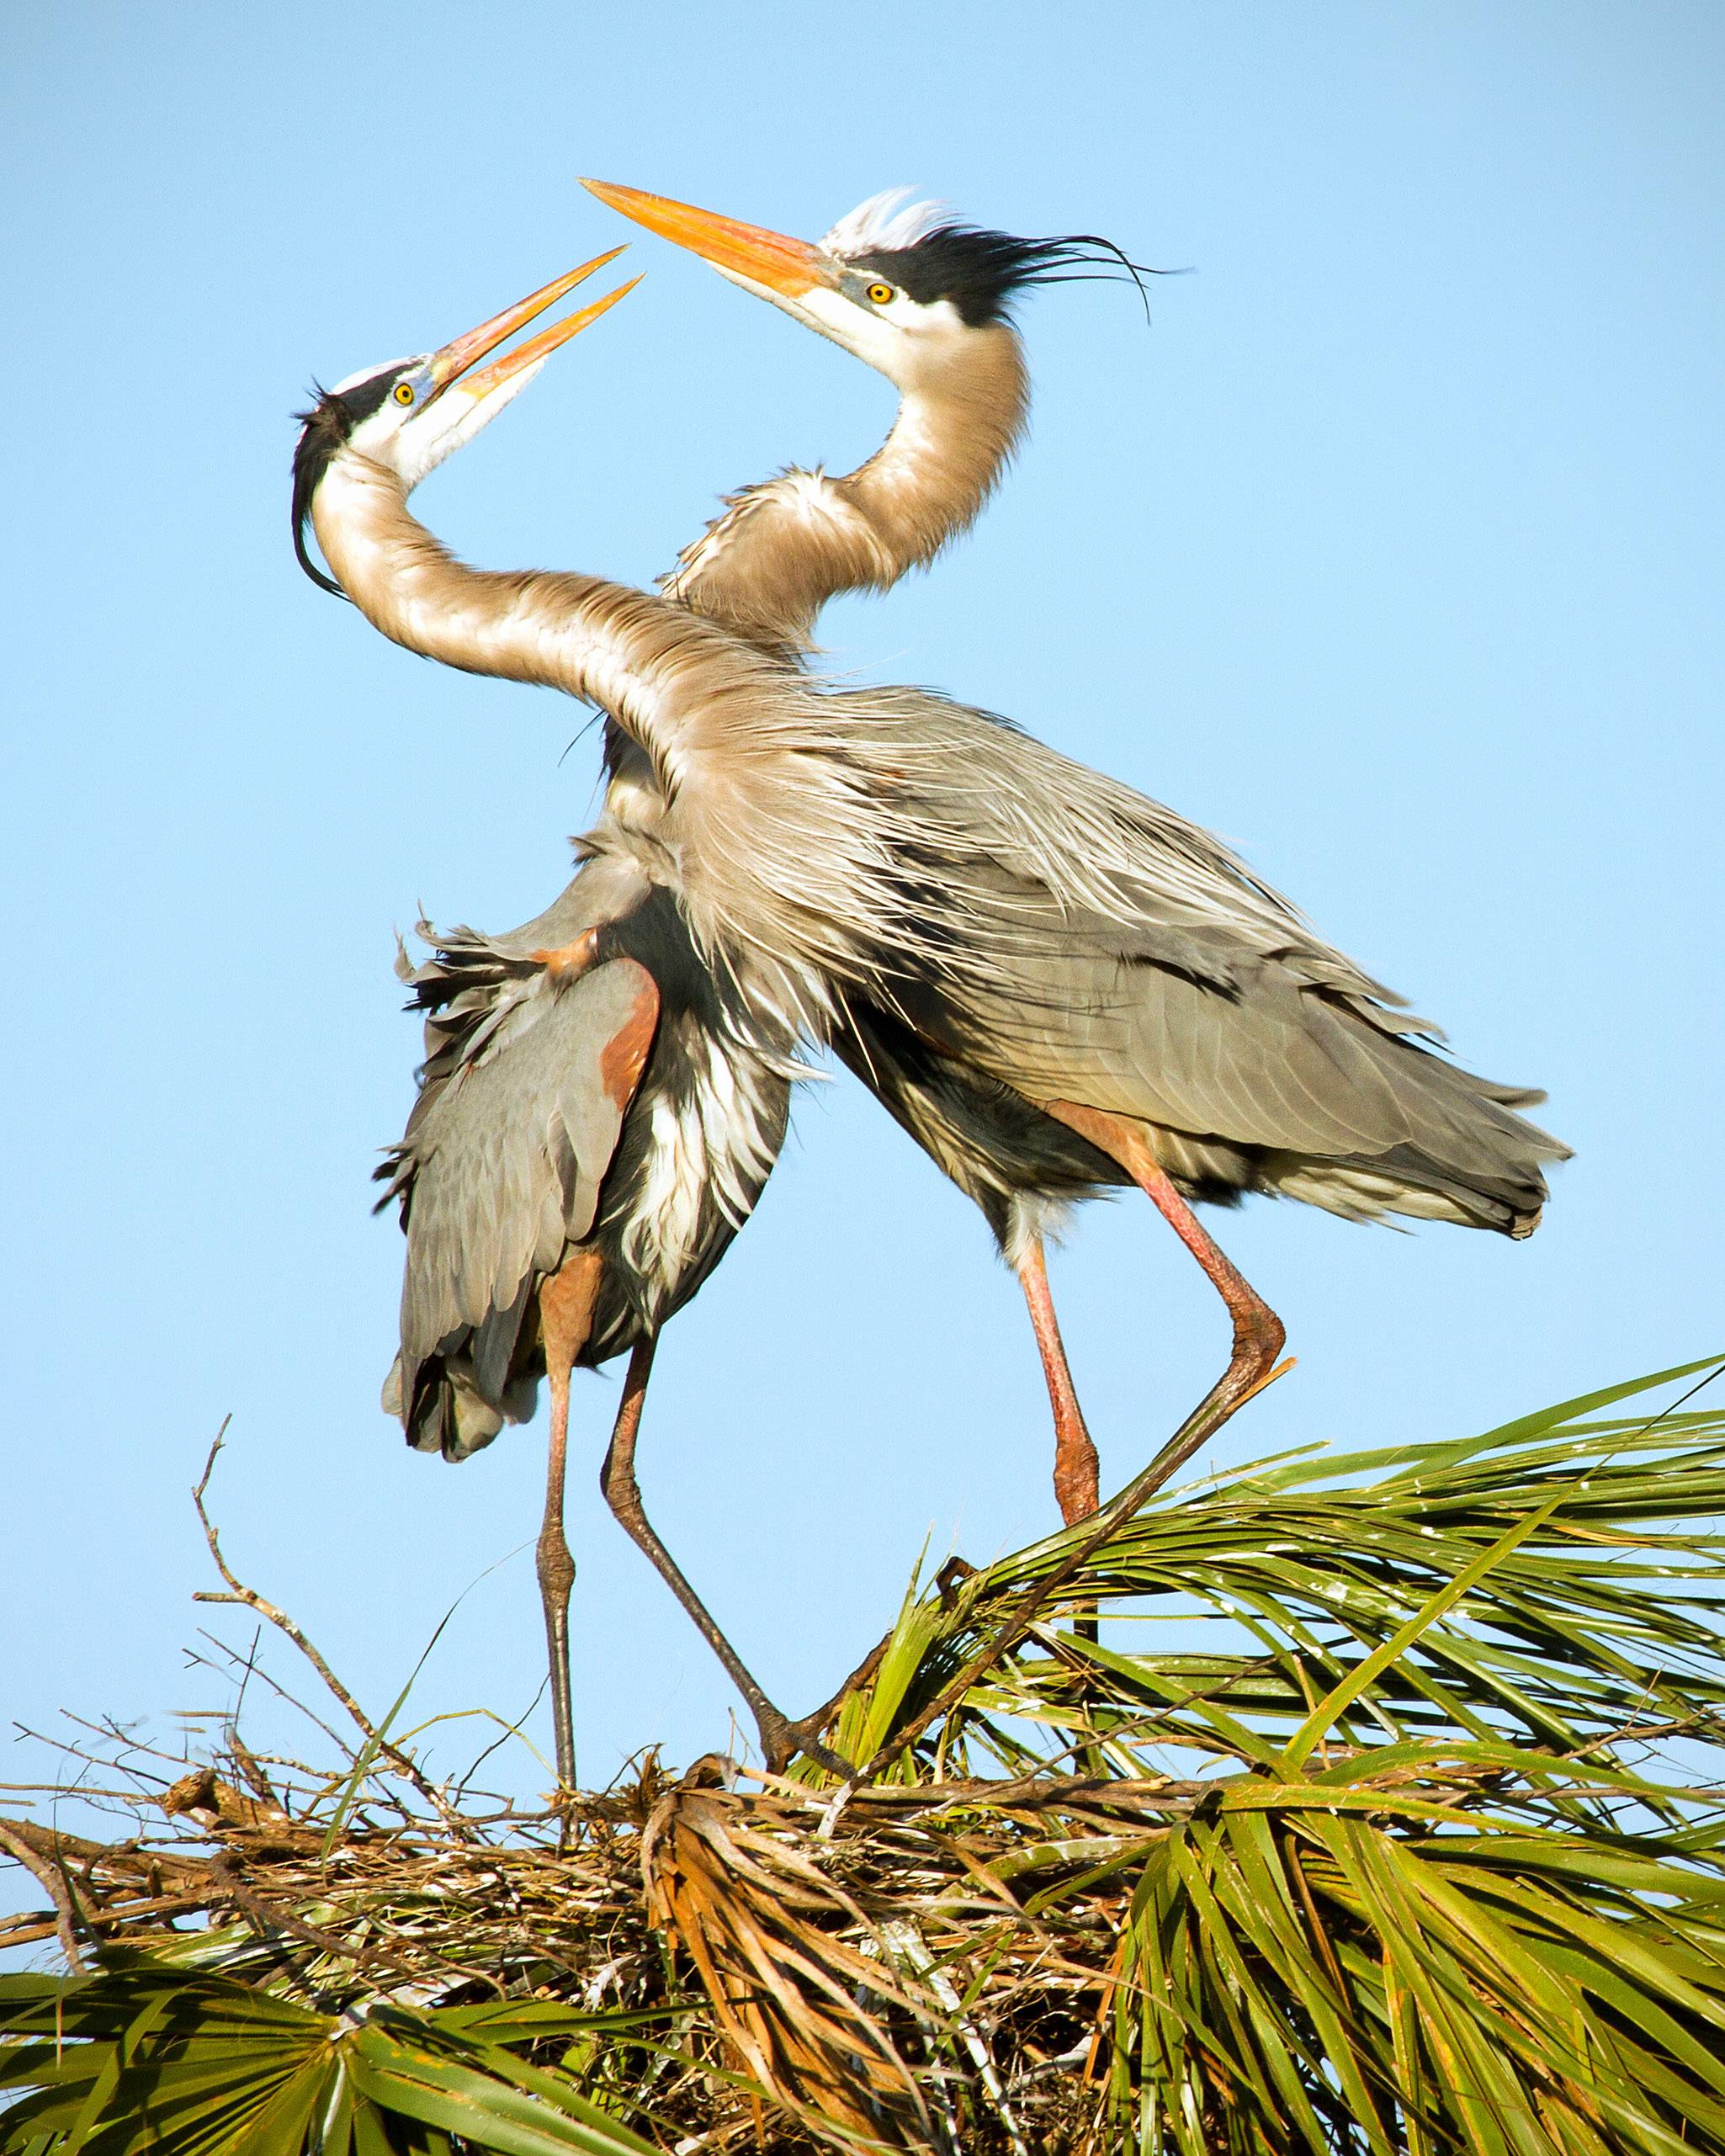 Two great blue herons build a nest in Viera Wetlands in Florida several weeks ago. The male would swoop down, carefully select building materials and then present them to the female who would accept them and then tuck them into the nest in an amazing ritual.